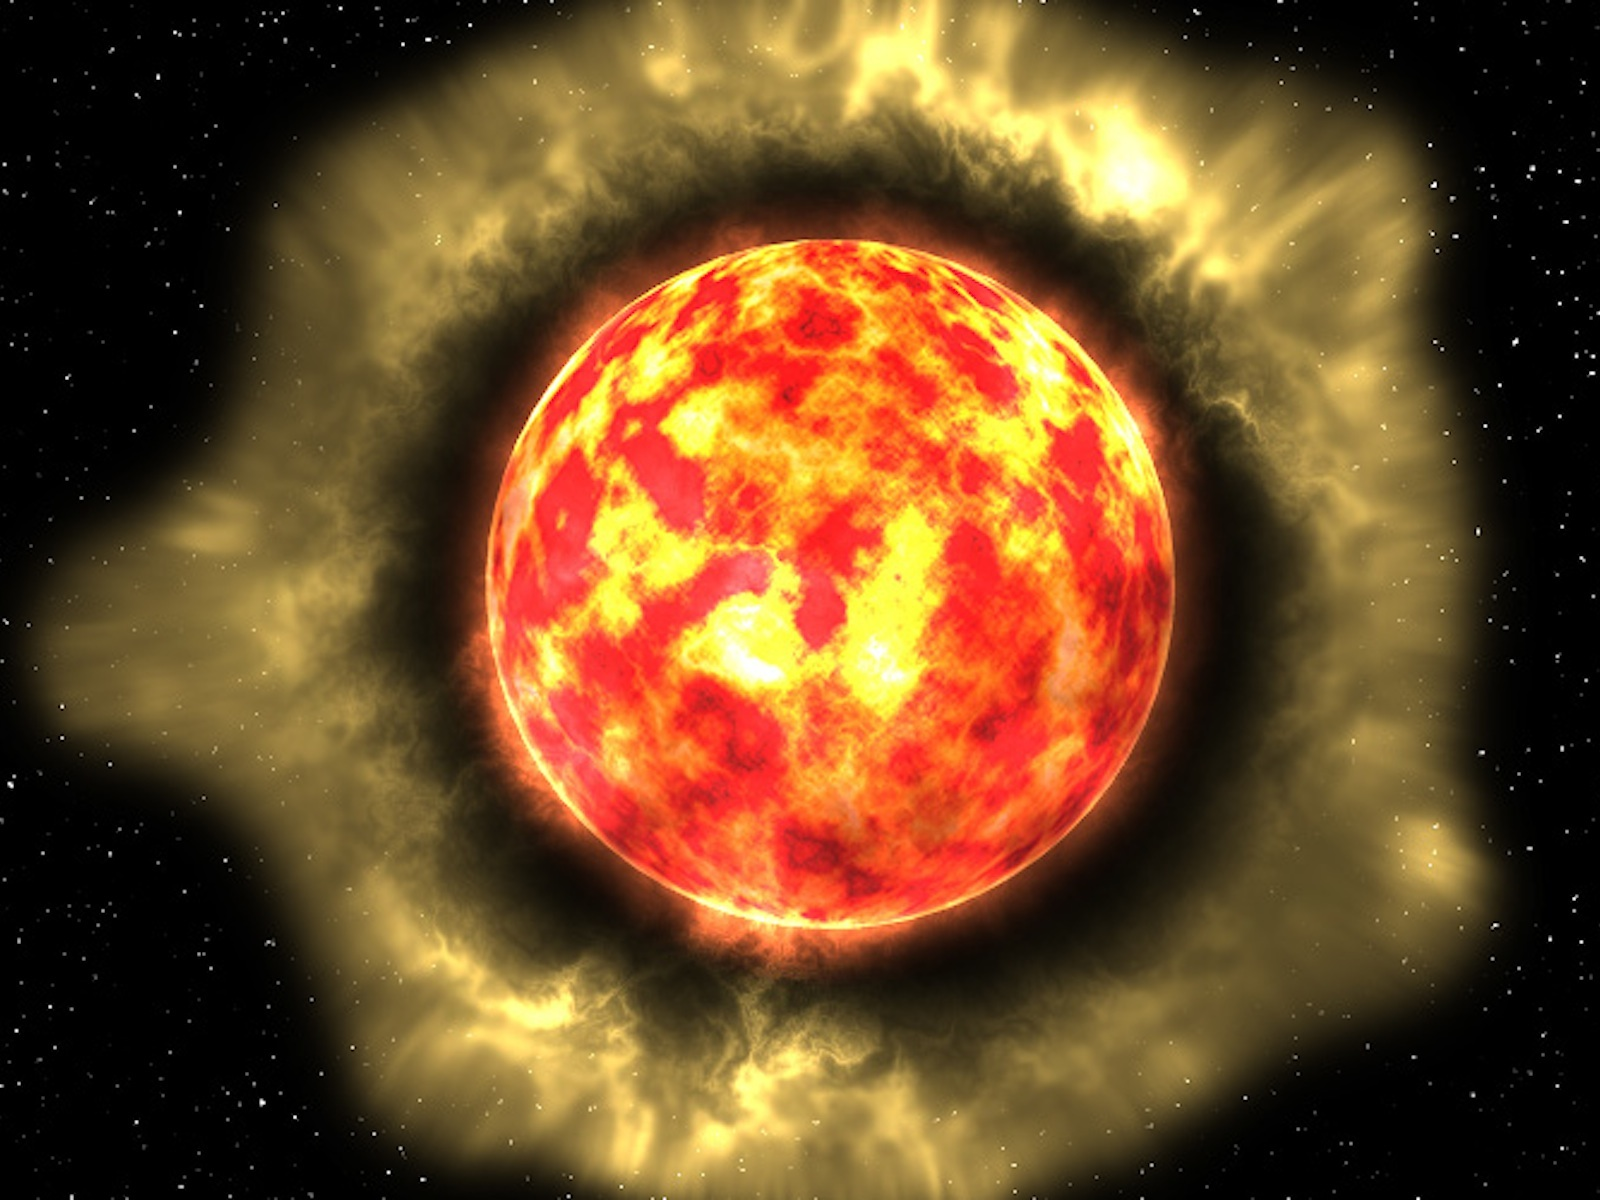 Dust Around a Giant Red Star